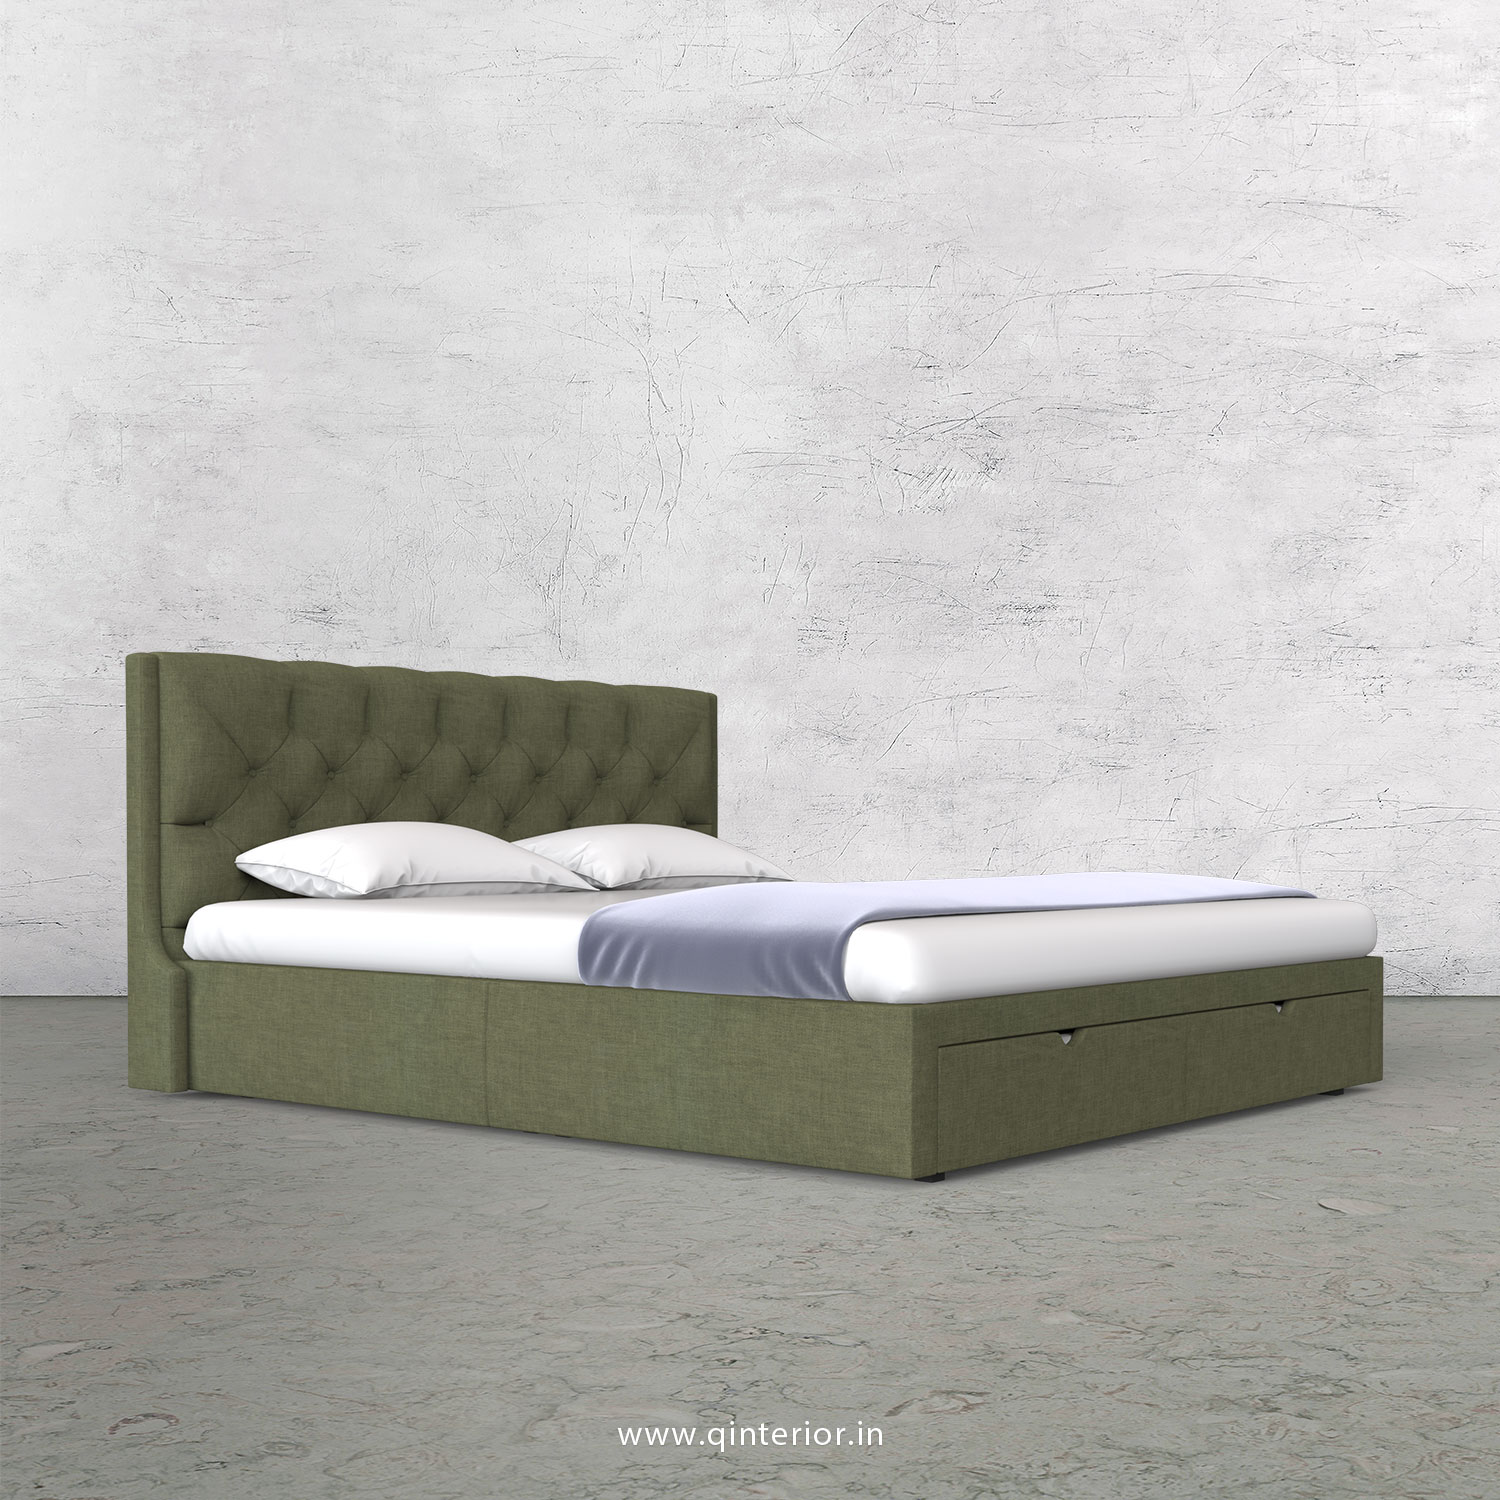 Scorpius King Size Storage Bed in Cotton Plain - KBD001 CP20